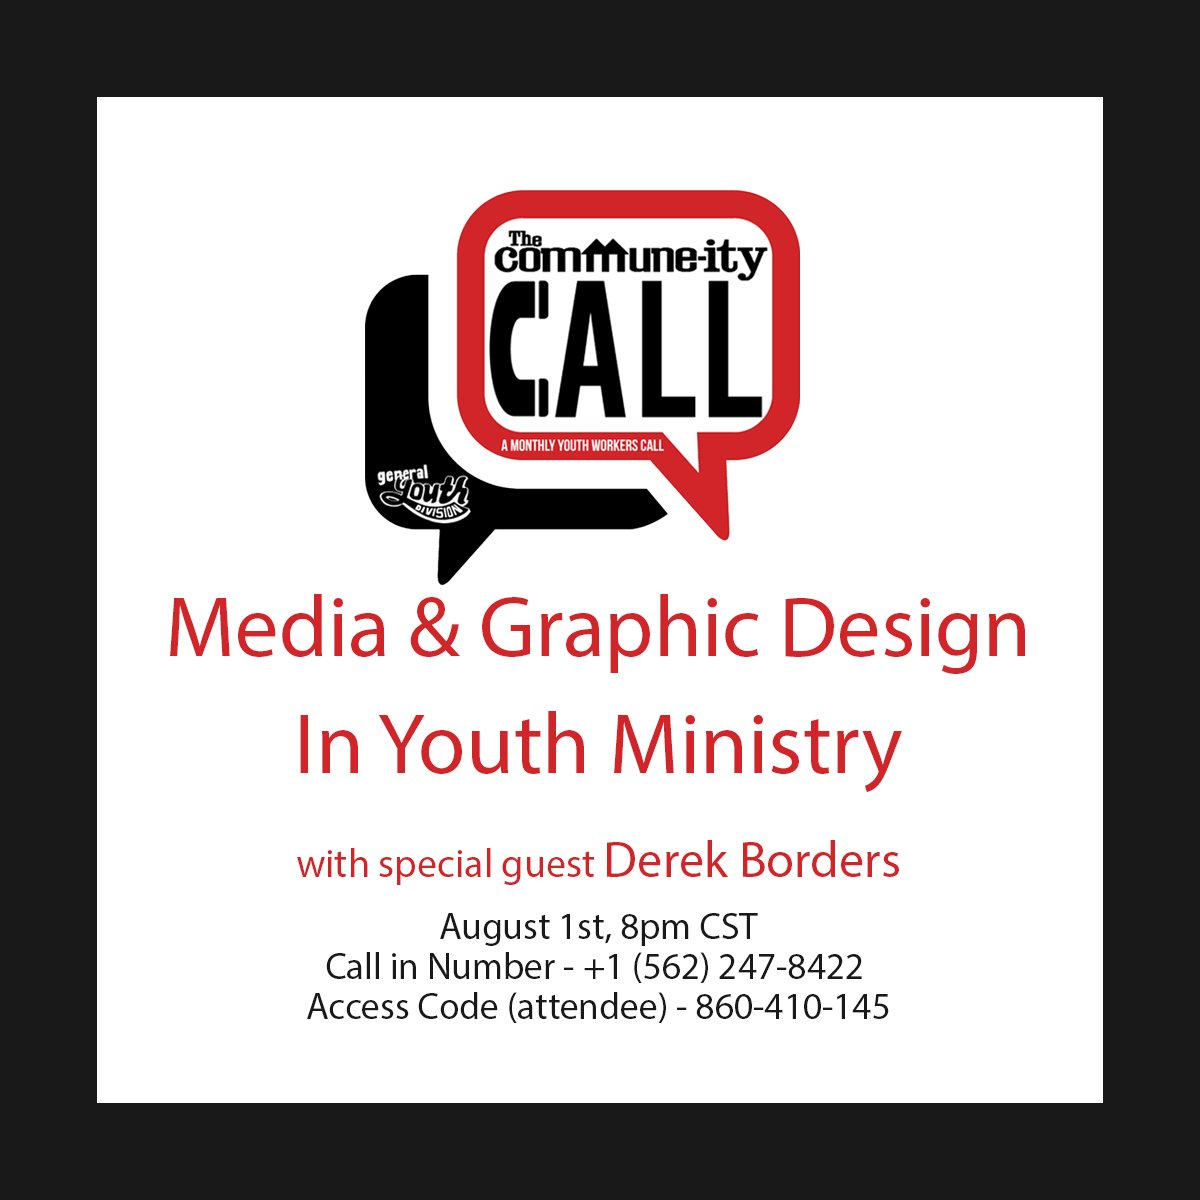 UPCI Youth Ministries on Twitter: